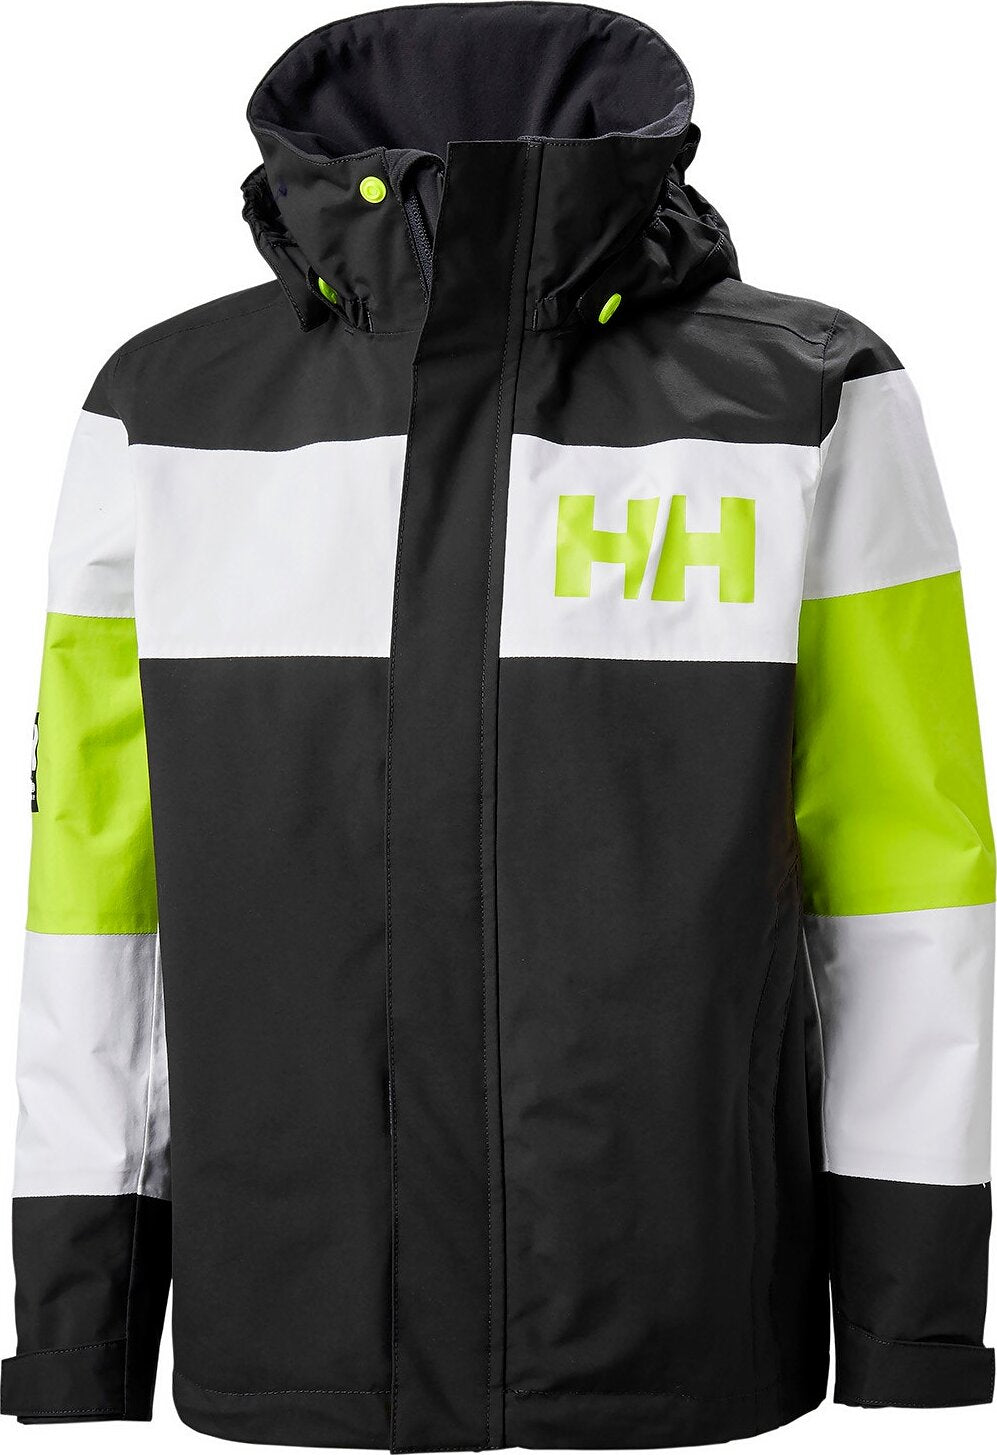 cc3221cc Helly Hansen Jr Salt Port Jacket - Big Kids | The Last Hunt